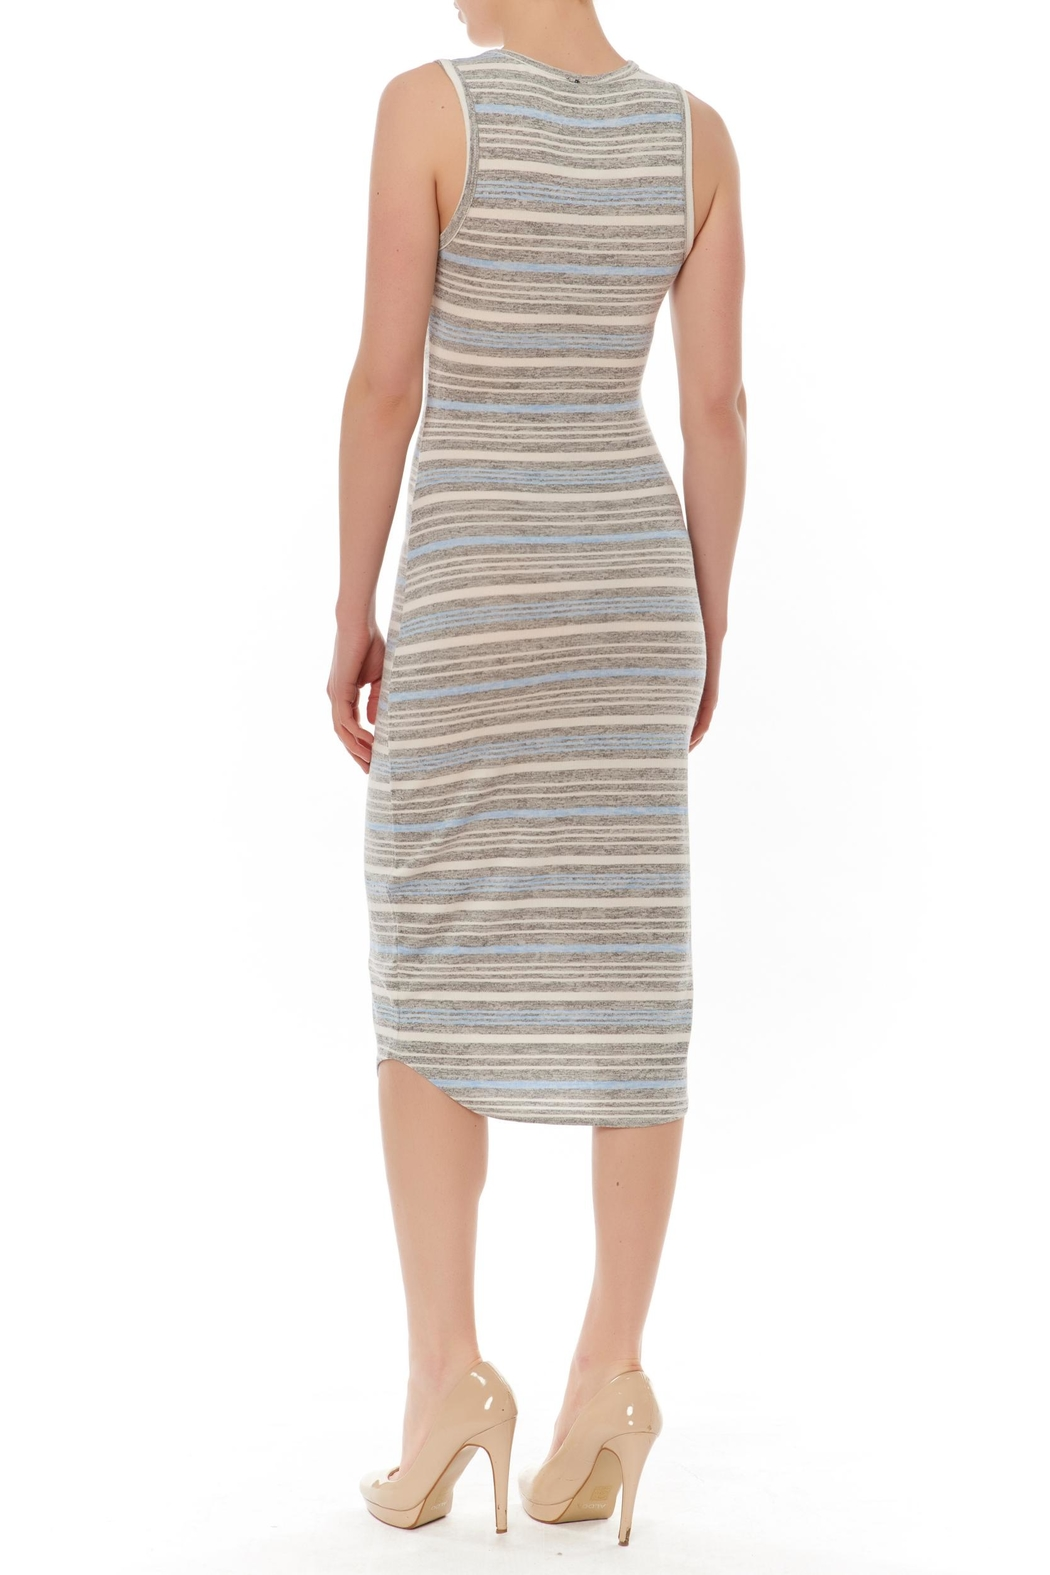 J HARPER Multi Stripe Dress - Front Full Image